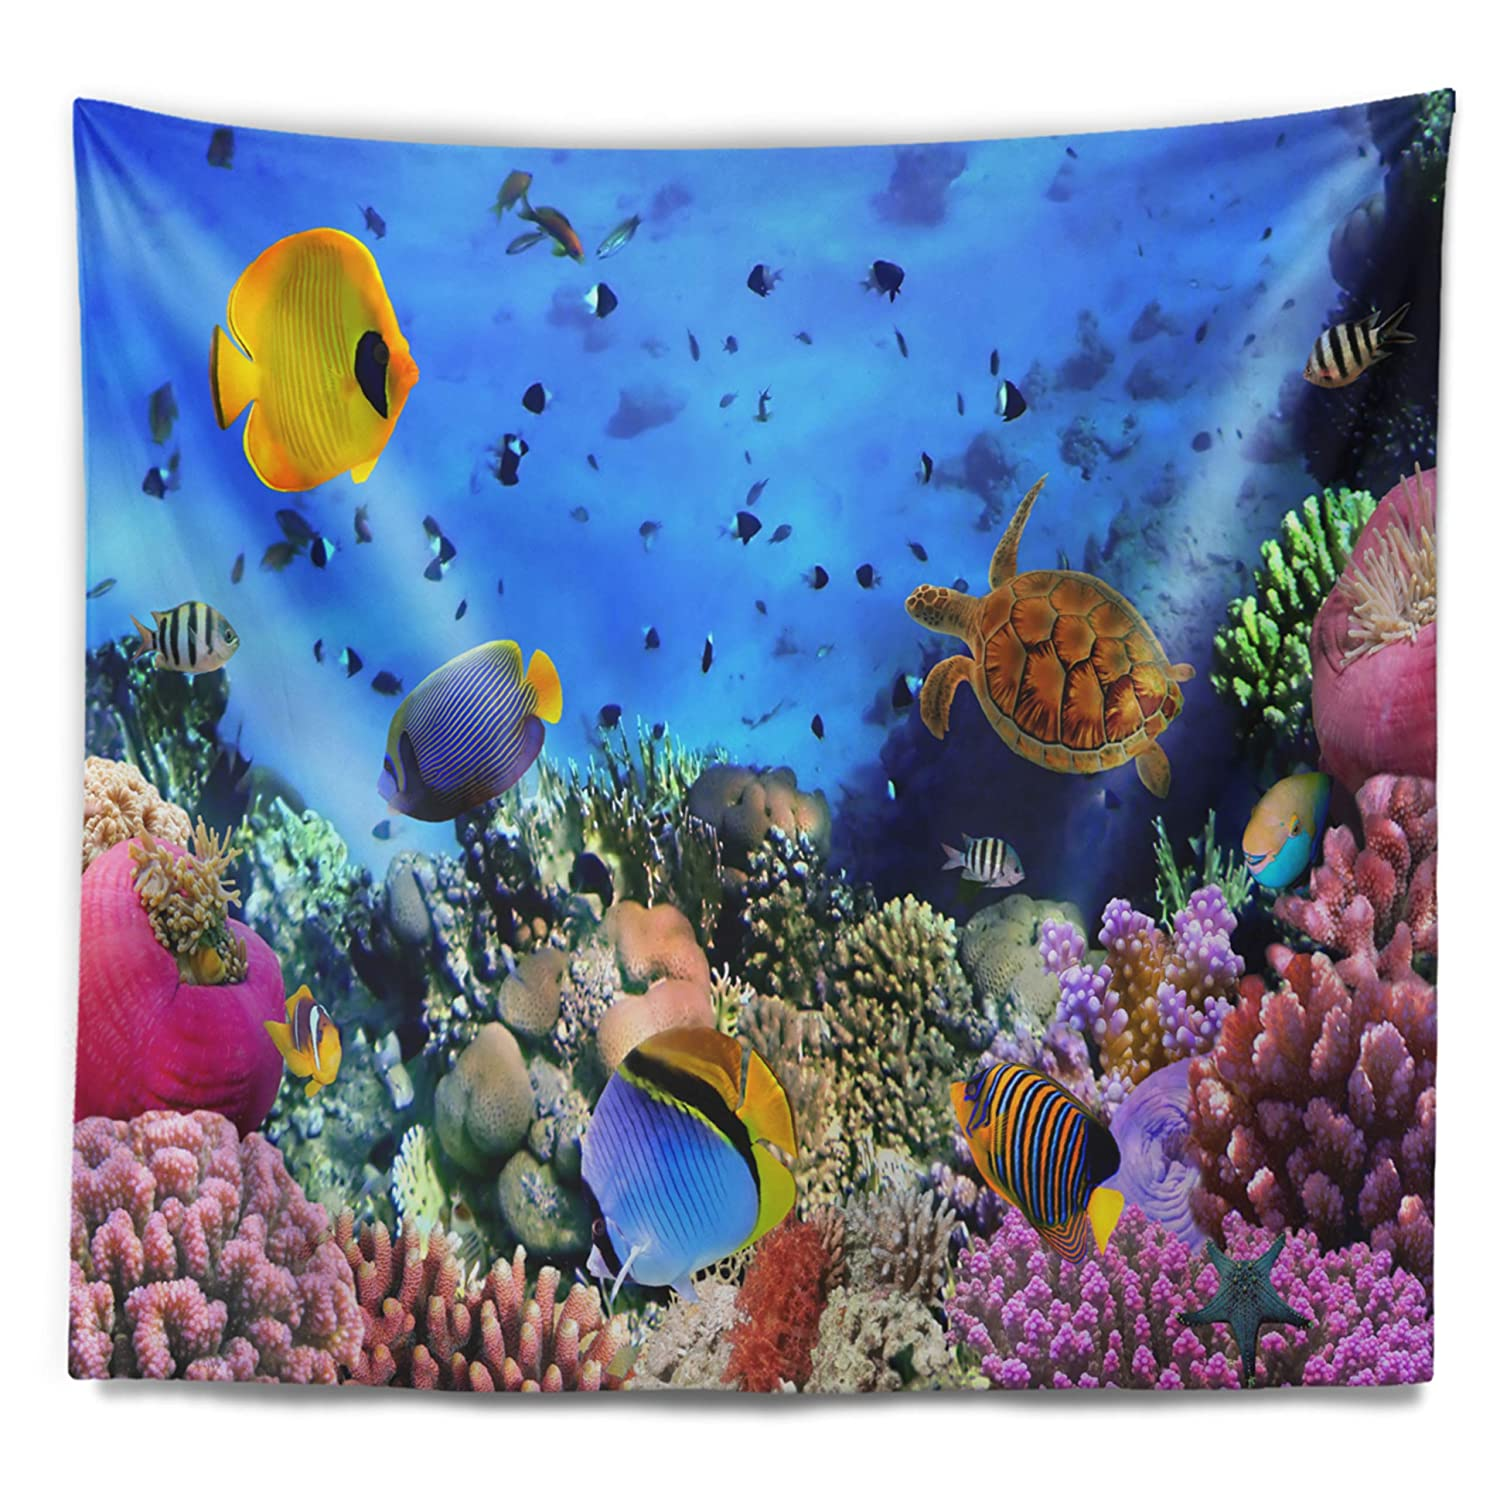 x 32 in Created On Lightweight Polyester Fabric Designart TAP6825-39-32  Colony and Coral Fishes Seascape Blanket D/écor Art for Home and Office Wall Tapestry Medium 39 in